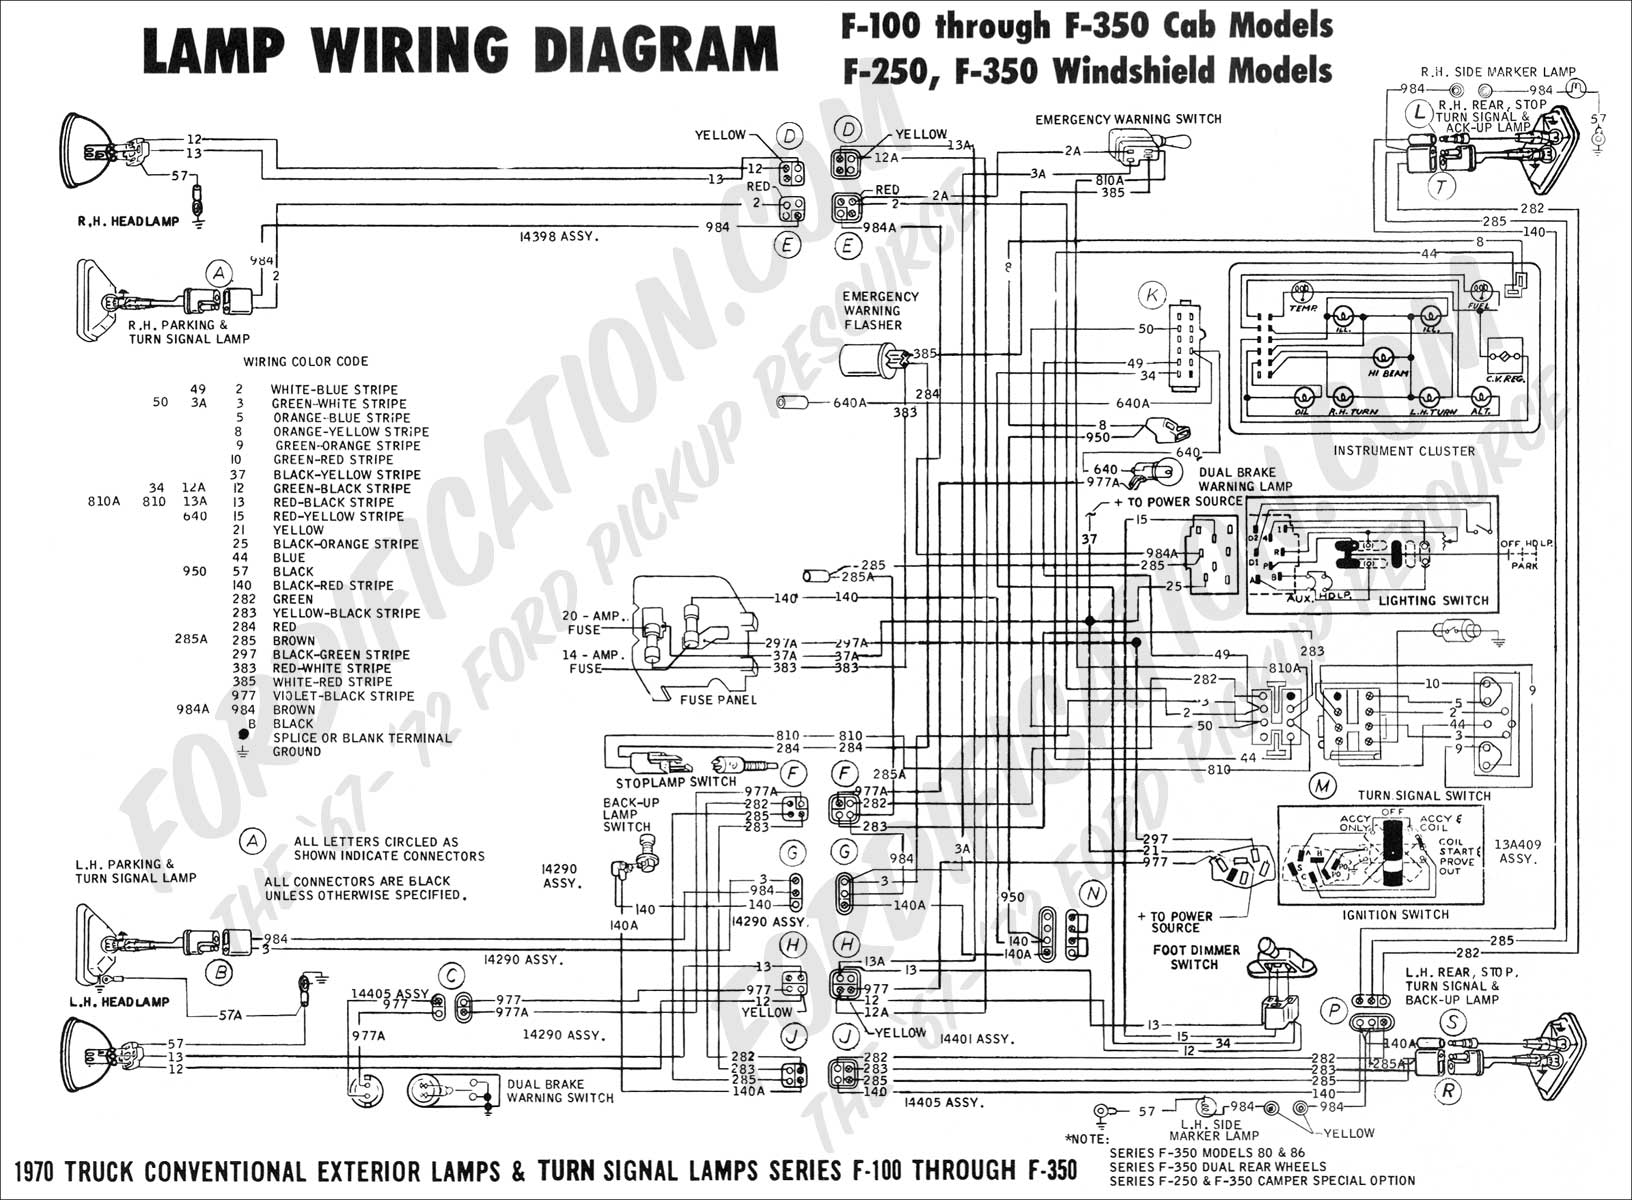 wiring diagram 2006 ford f250 schematics and wiring diagrams 2004 ford excursion super duty f250 550 wiring diagram manual original